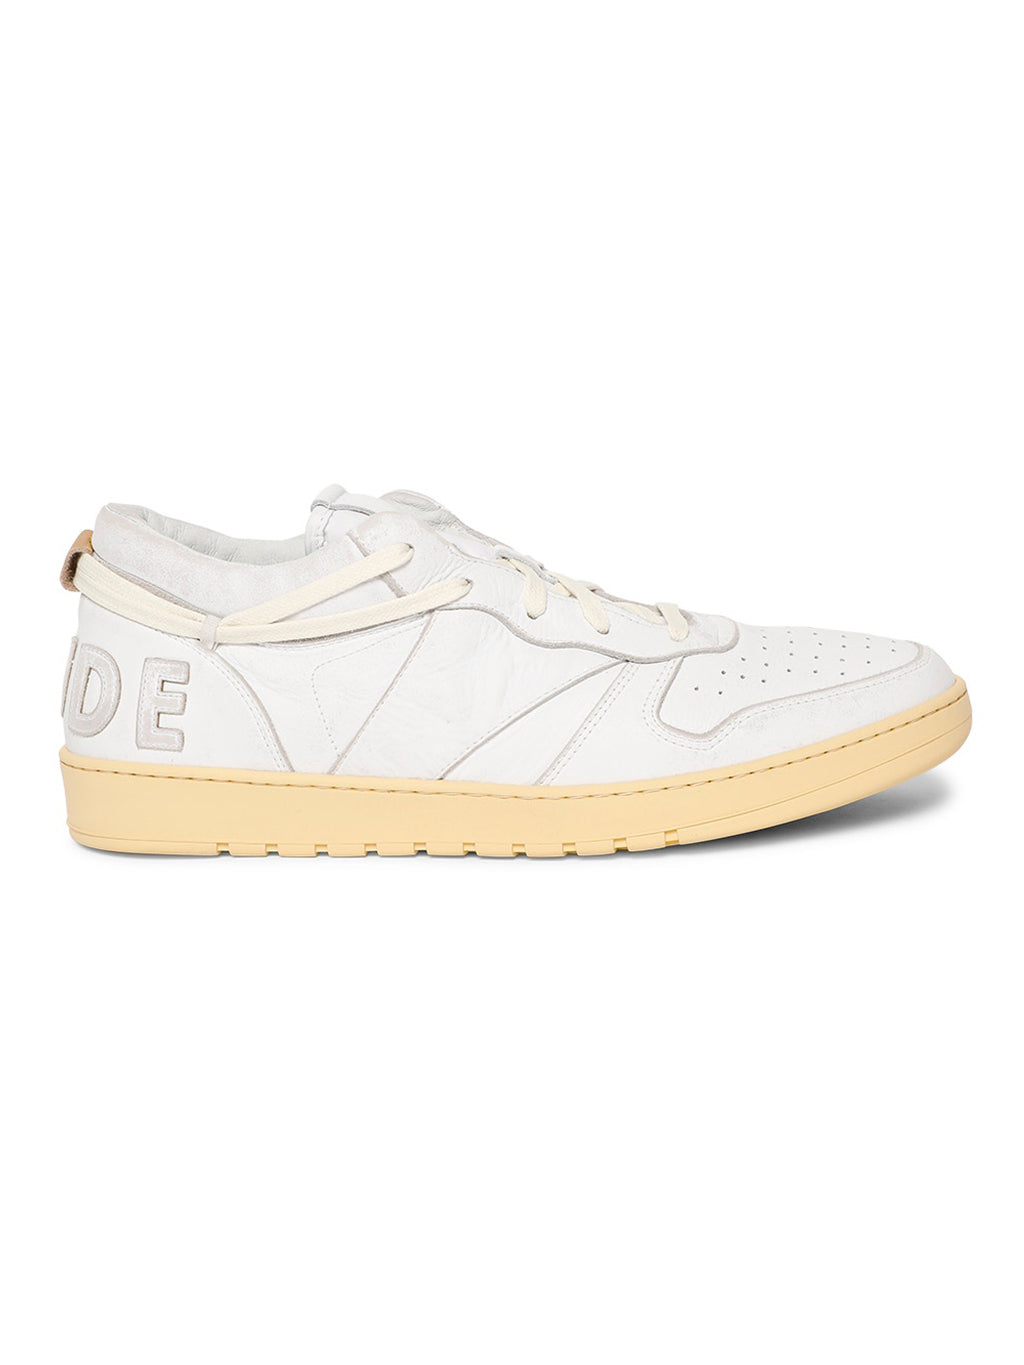 White Rhecess Low Top Sneakers